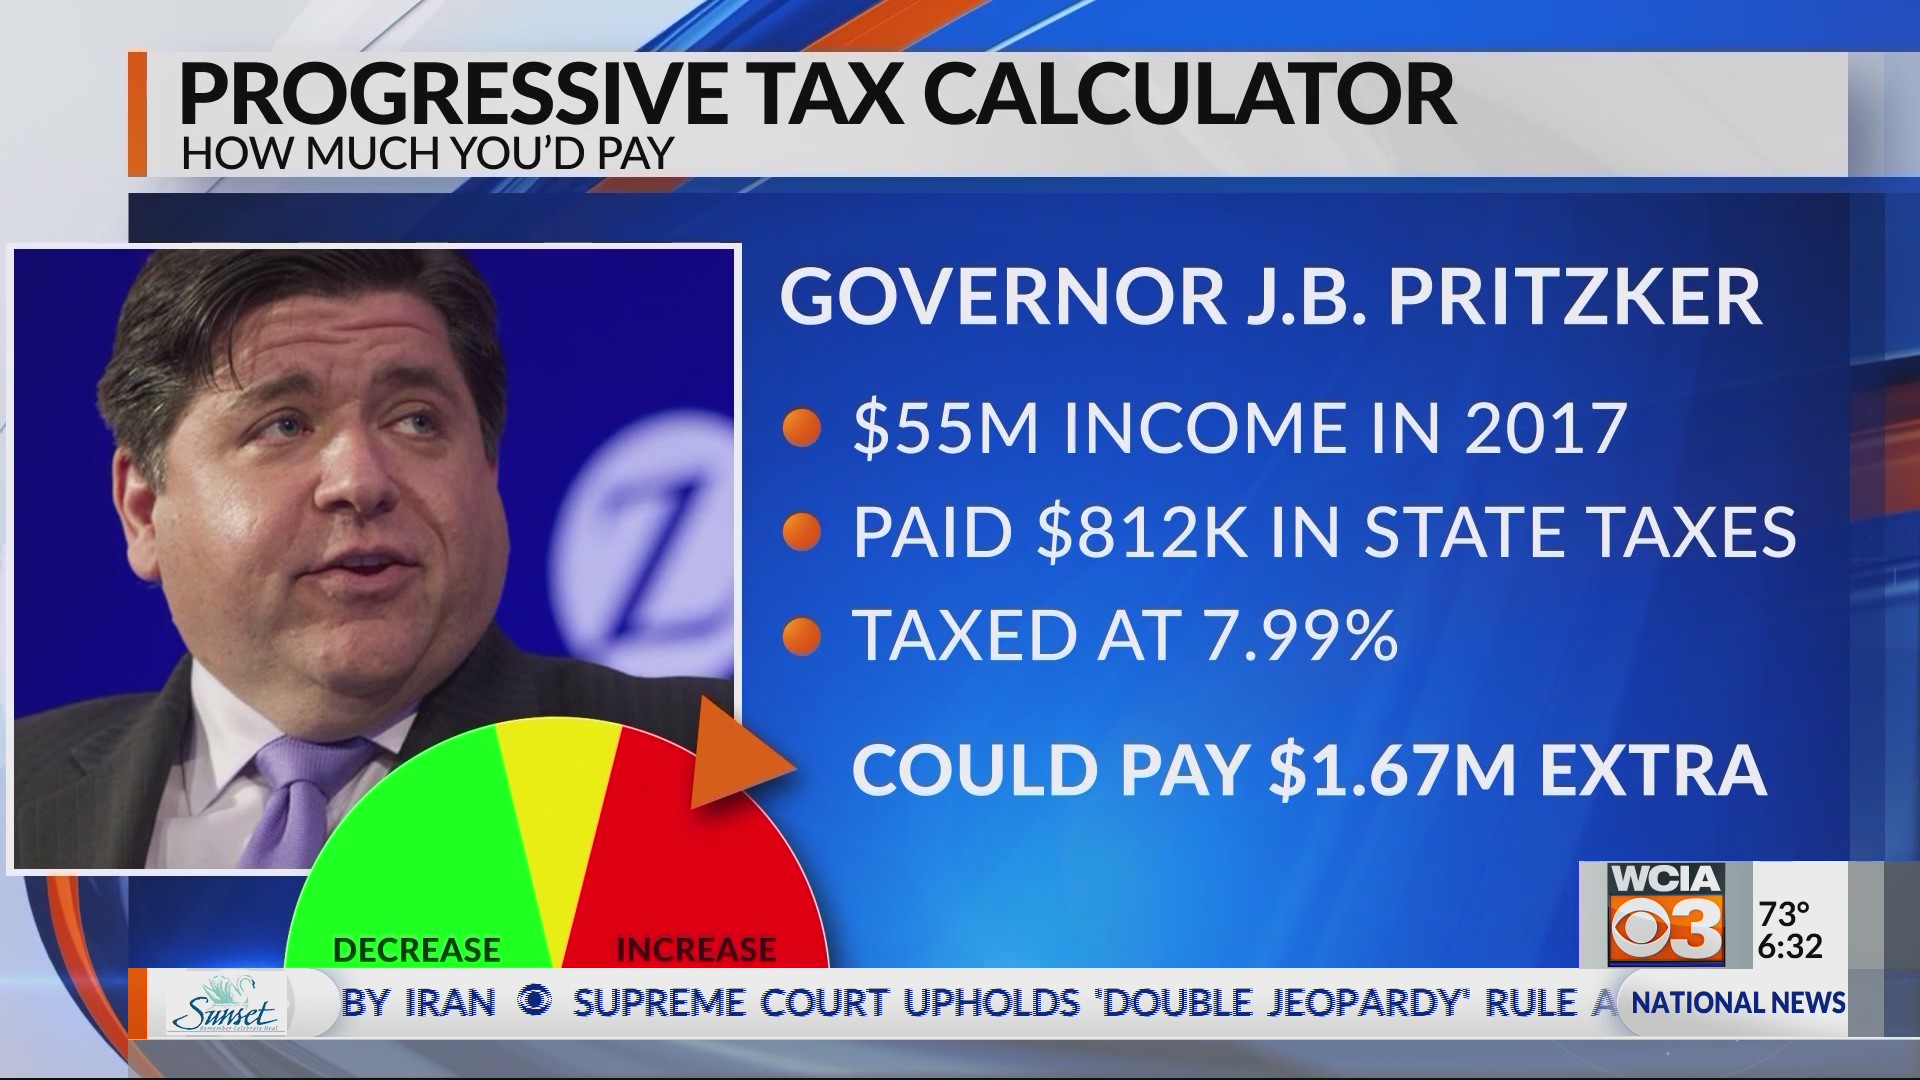 Pritzker's progressive tax plan could cost him up to $1 67